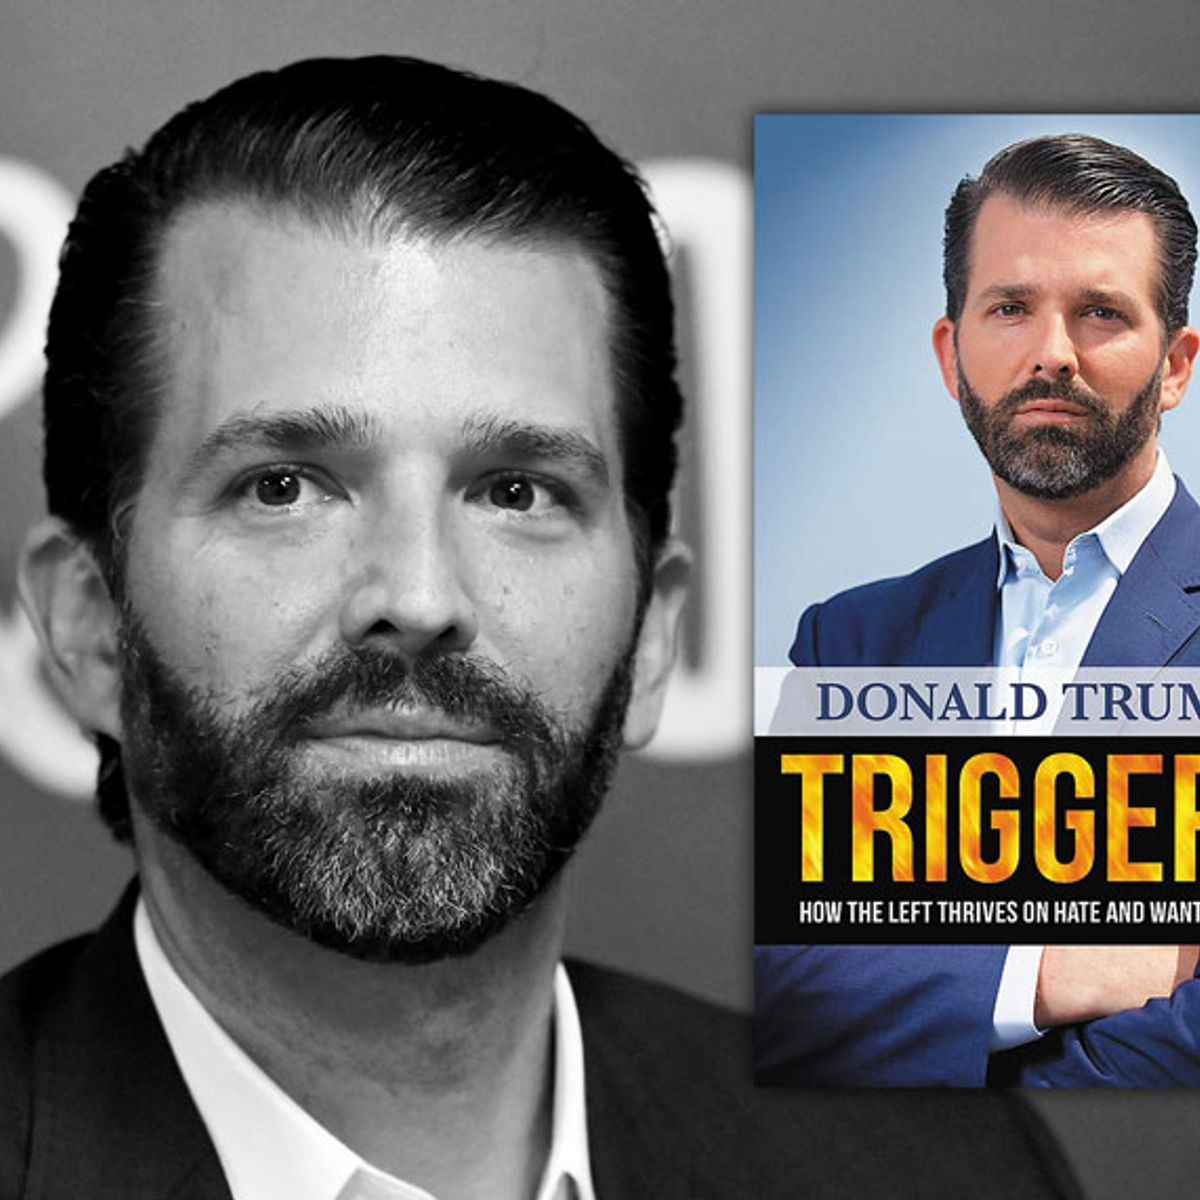 Don Jr.'s book says a lot more about the Trump family than he knows